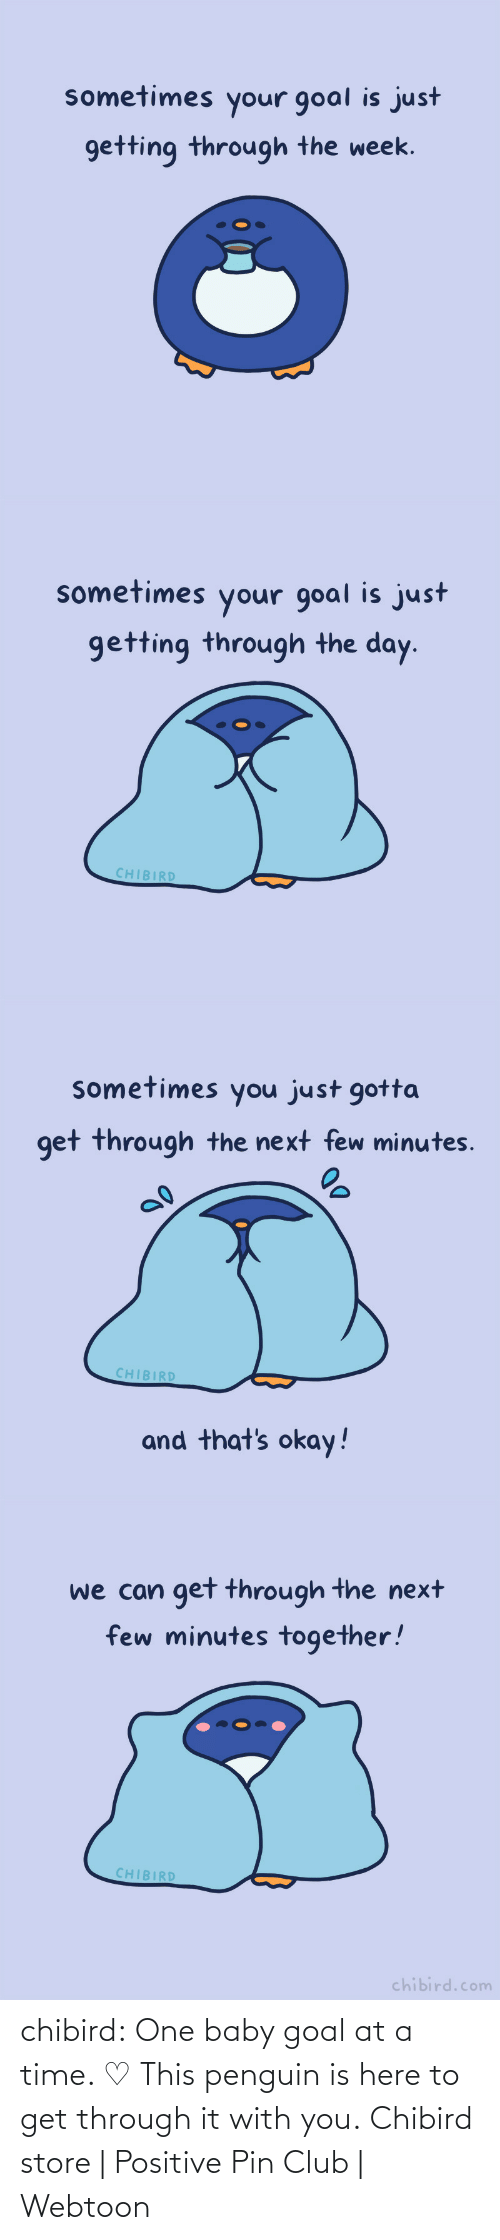 challenge: chibird:  One baby goal at a time. ♡ This penguin is here to get through it with you.  Chibird store | Positive Pin Club | Webtoon